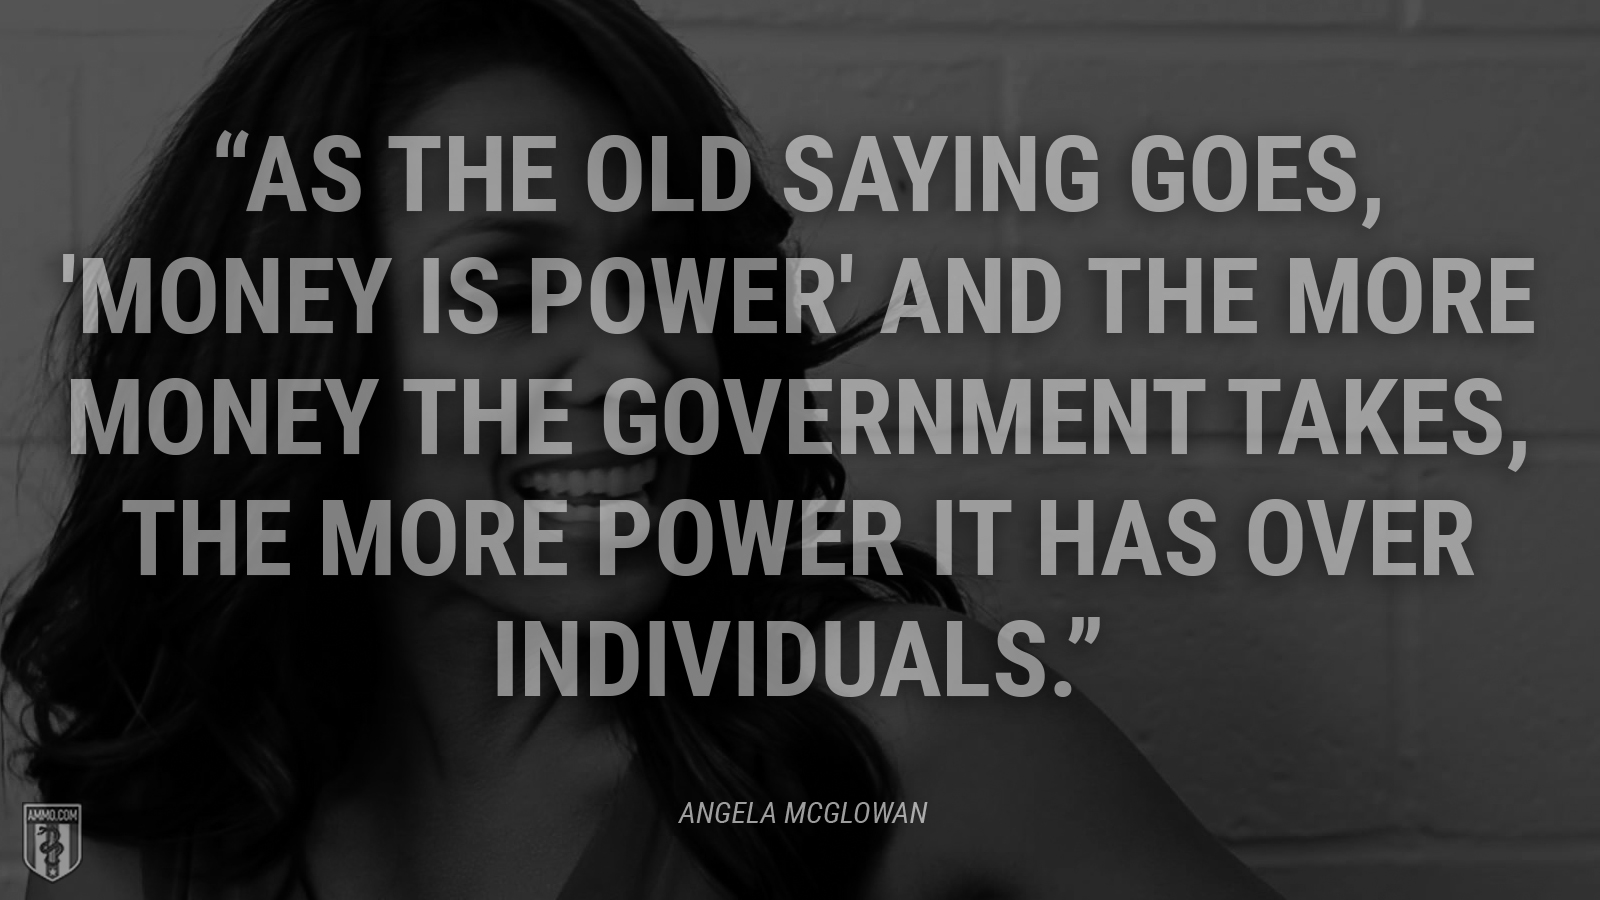 """As the old saying goes, 'money is power' and the more money the government takes, the more power it has over individuals."" - Angela McGlowan"